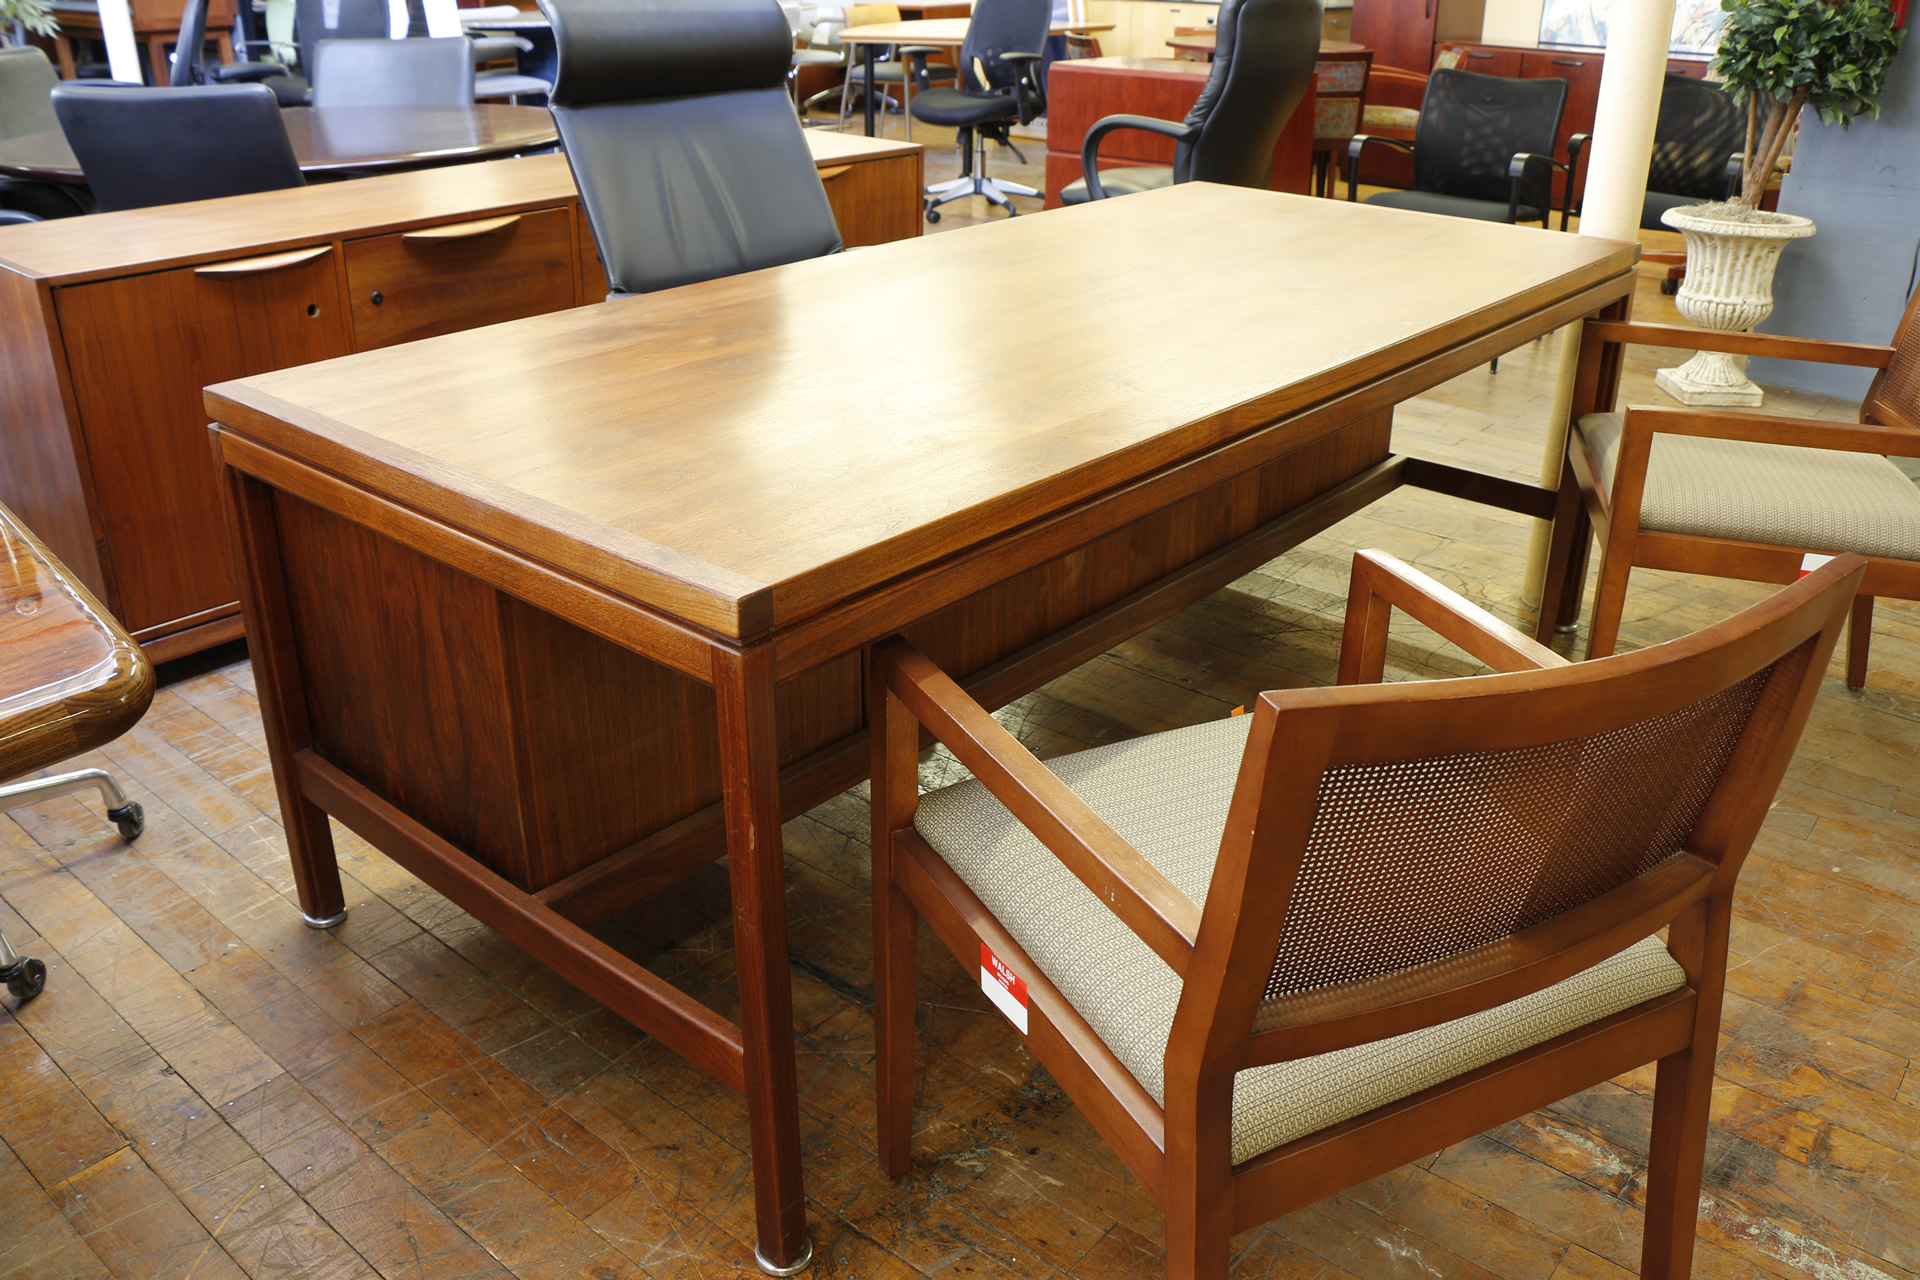 peartreeofficefurniture_peartreeofficefurniture_mg_4376.jpg